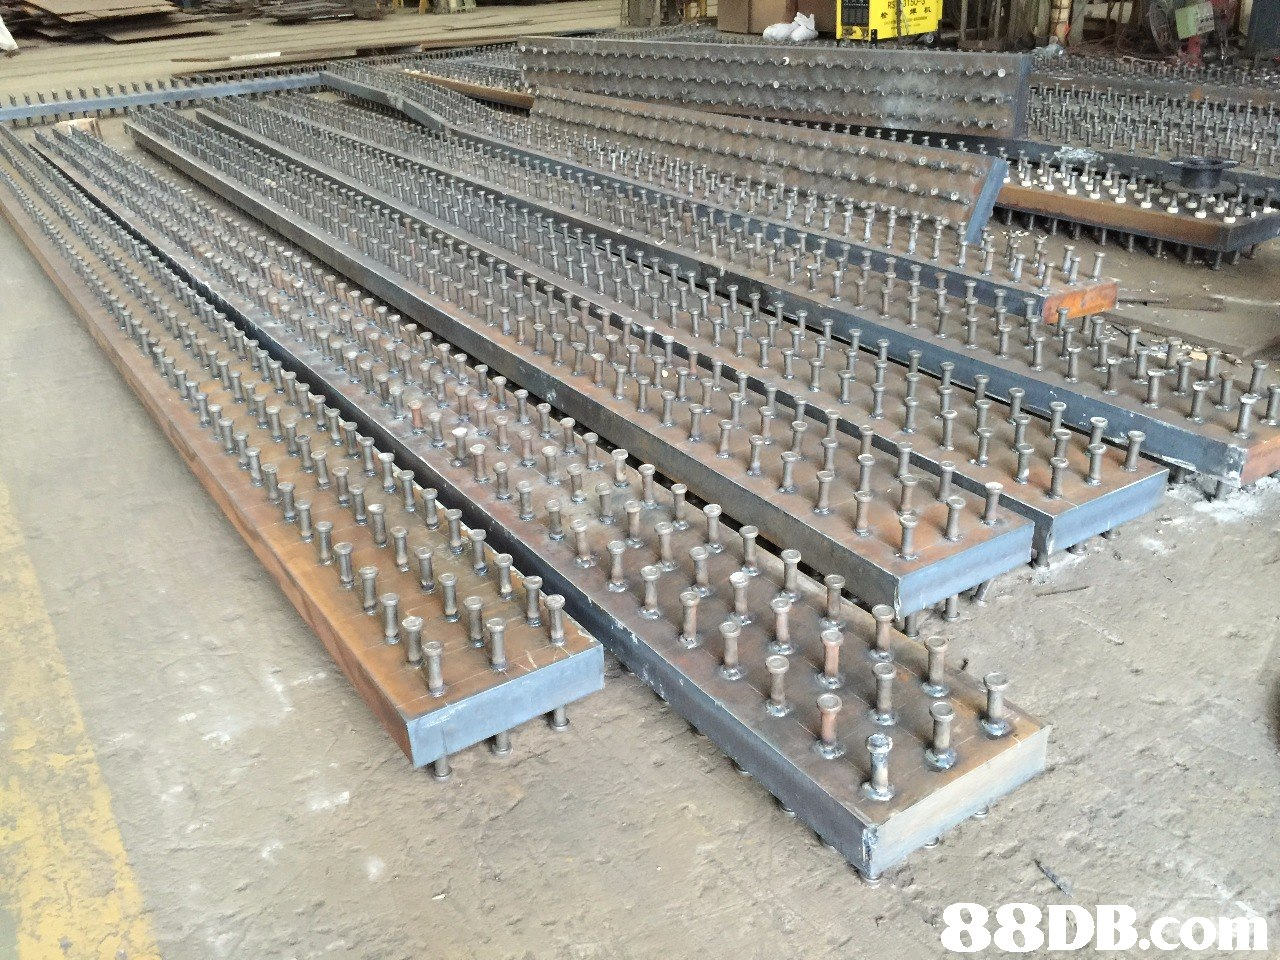 88DBcom  Metal,Transport,Steel,Iron,Track